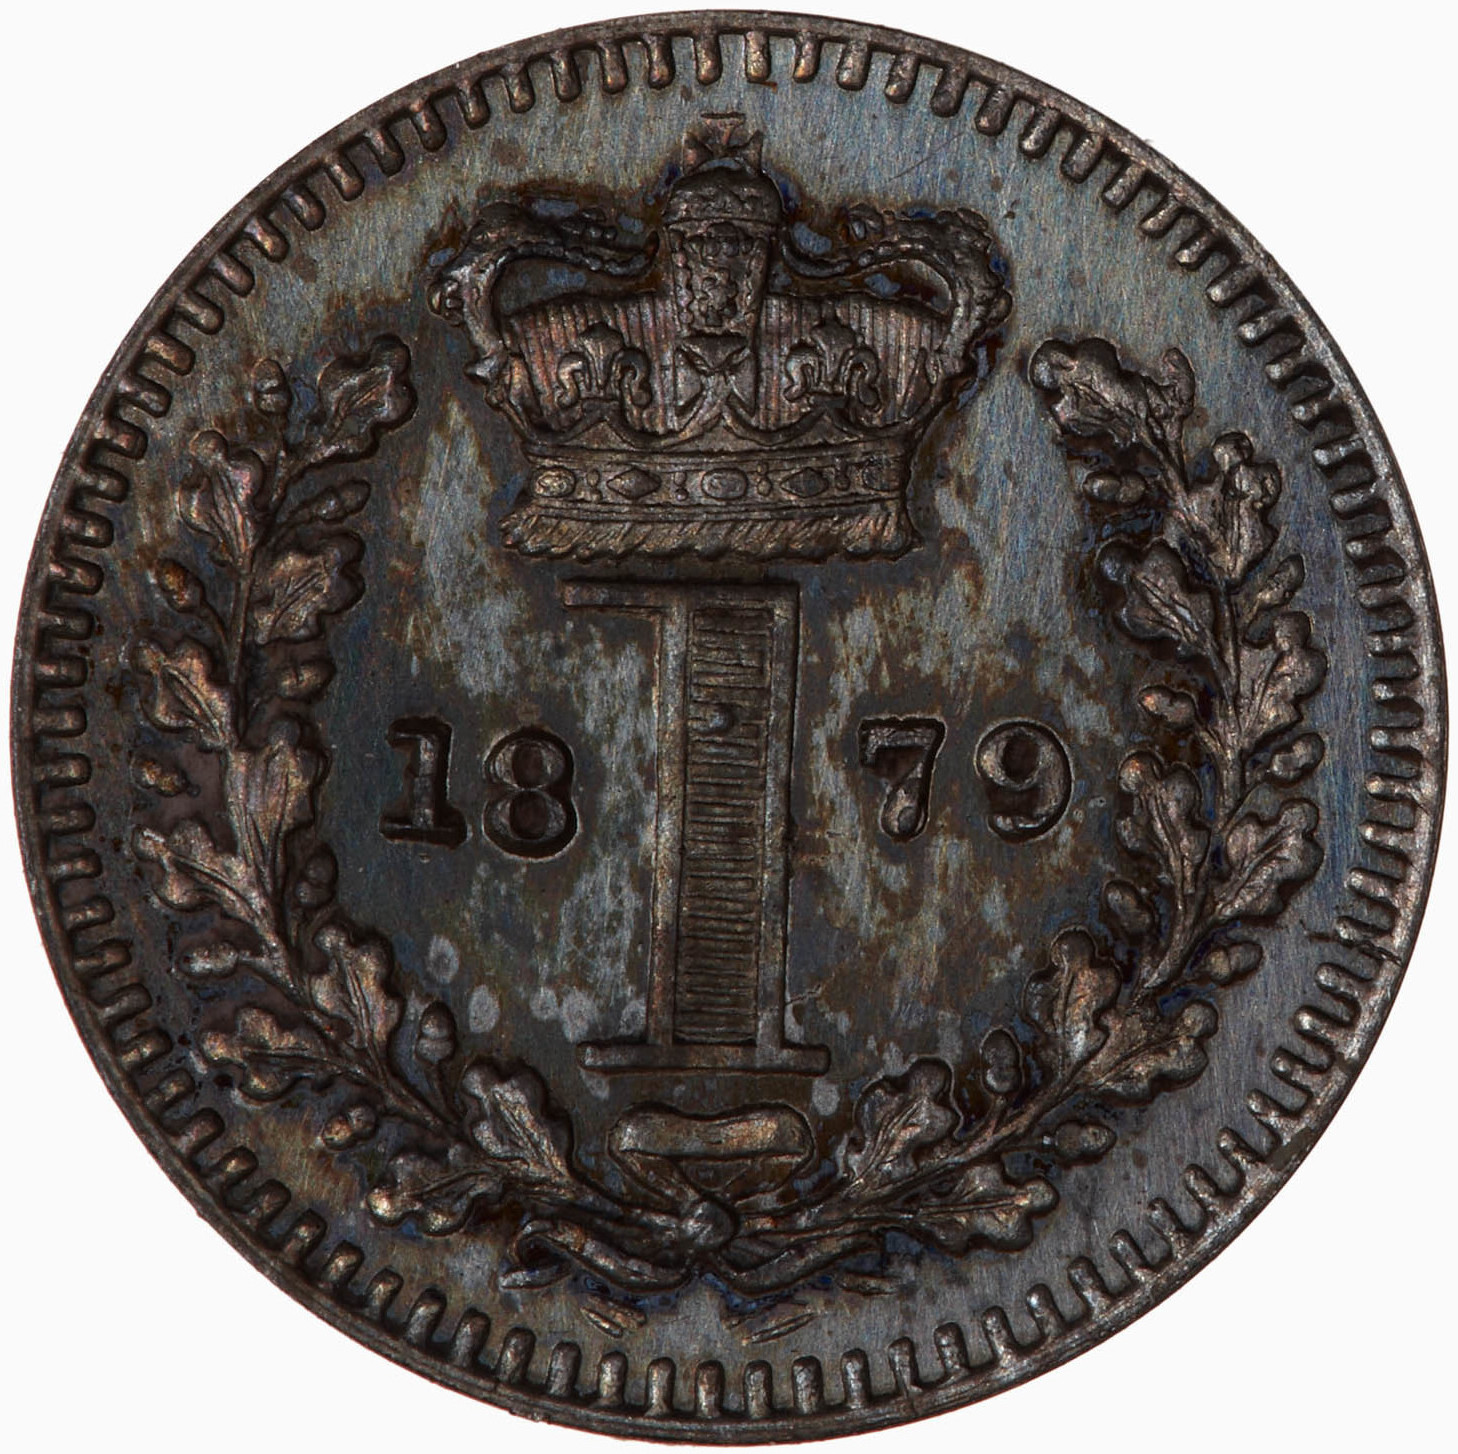 Penny 1879 (Maundy): Photo Coin - Penny (Maundy), Queen Victoria, Great Britain, 1879